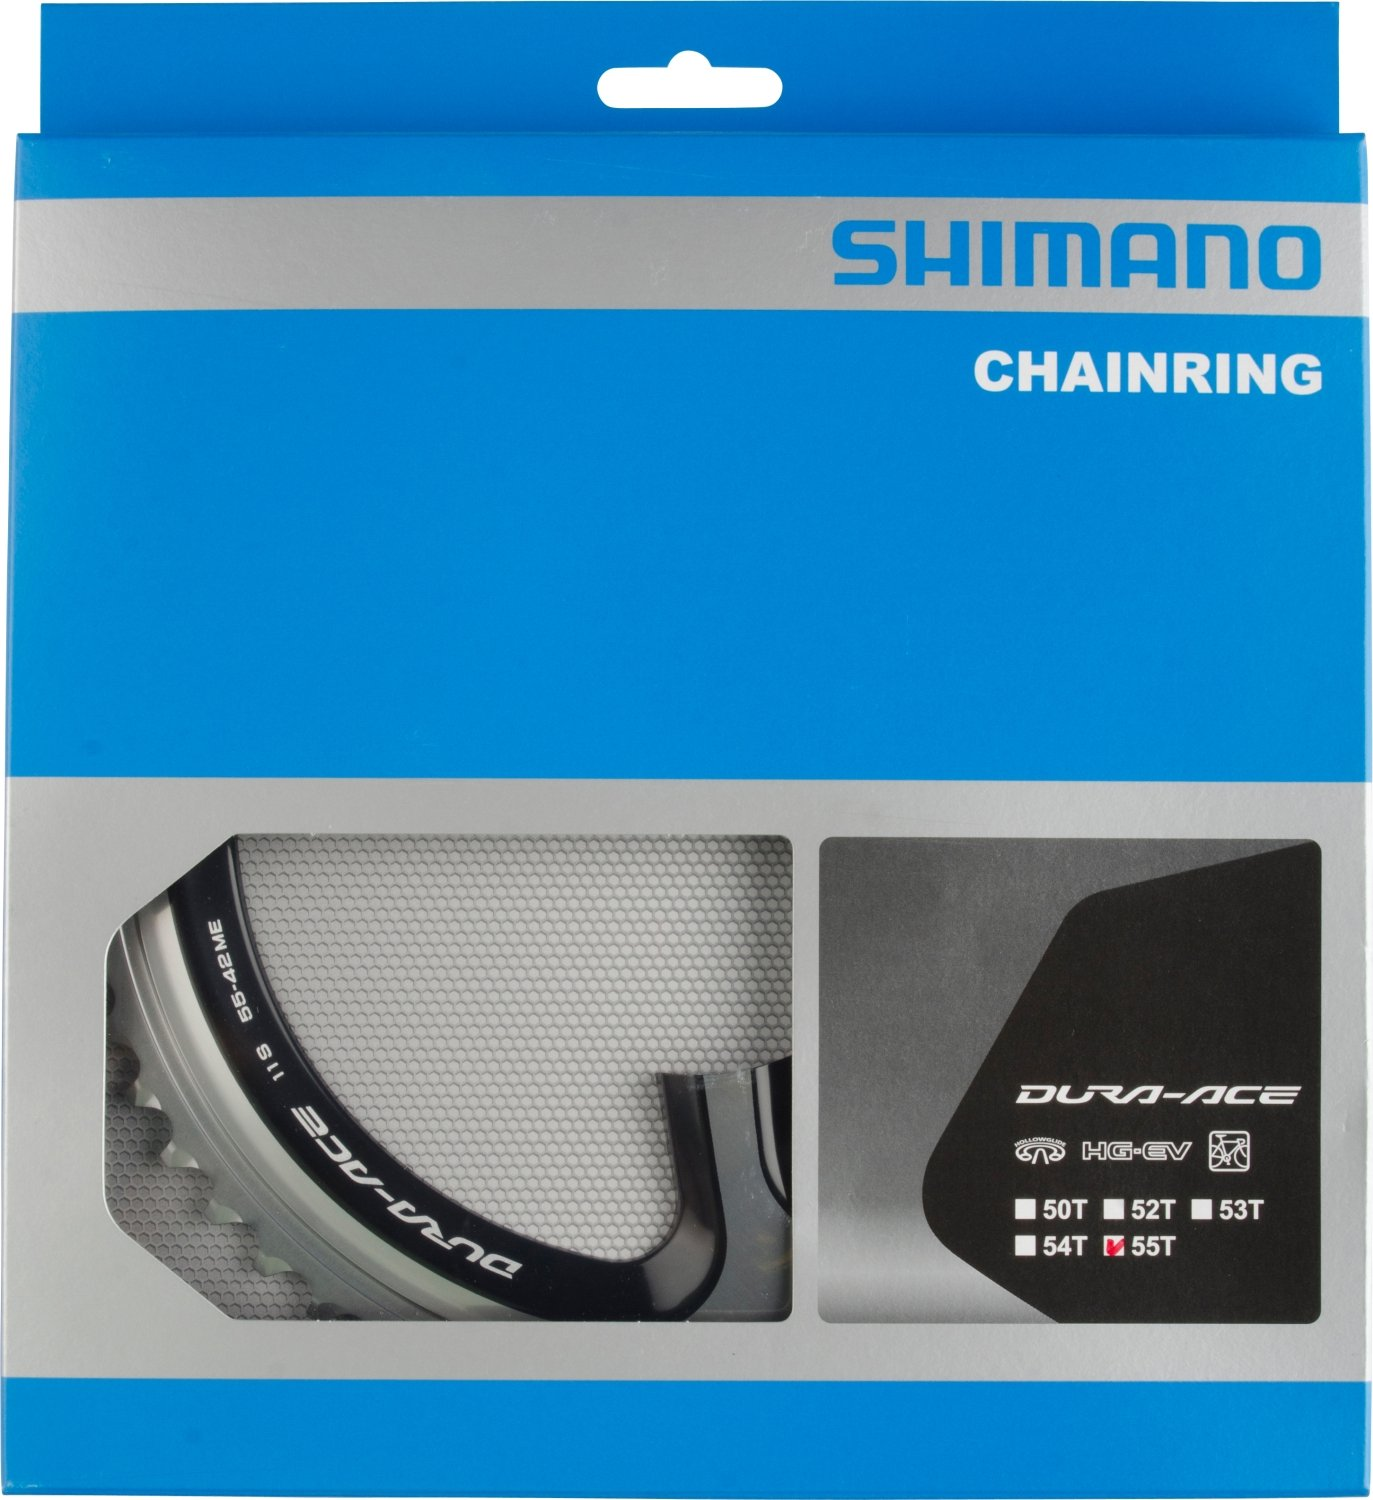 SHIMANO(シマノ) 引掛け歯付チェーンリング 55T-ME(55-42T用) FC-9000チェーンリンク55T-ME B00G9AN7T6